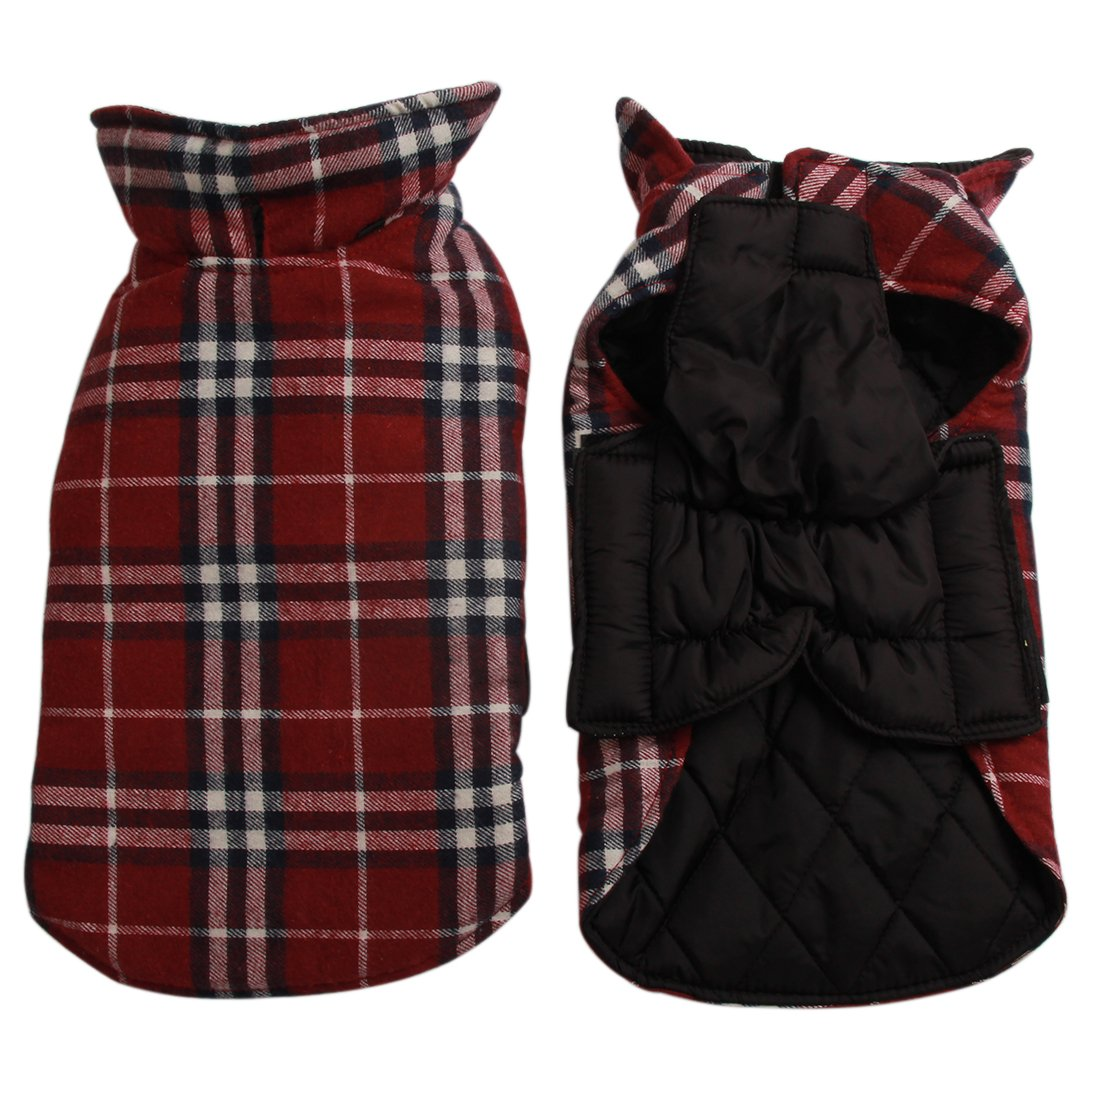 Red L Red L JoyDaog Reversible Plaid Dog Coat(7 Sizes)Waterproof Windproof Warm for Cold Weather Dog Jacket Red L